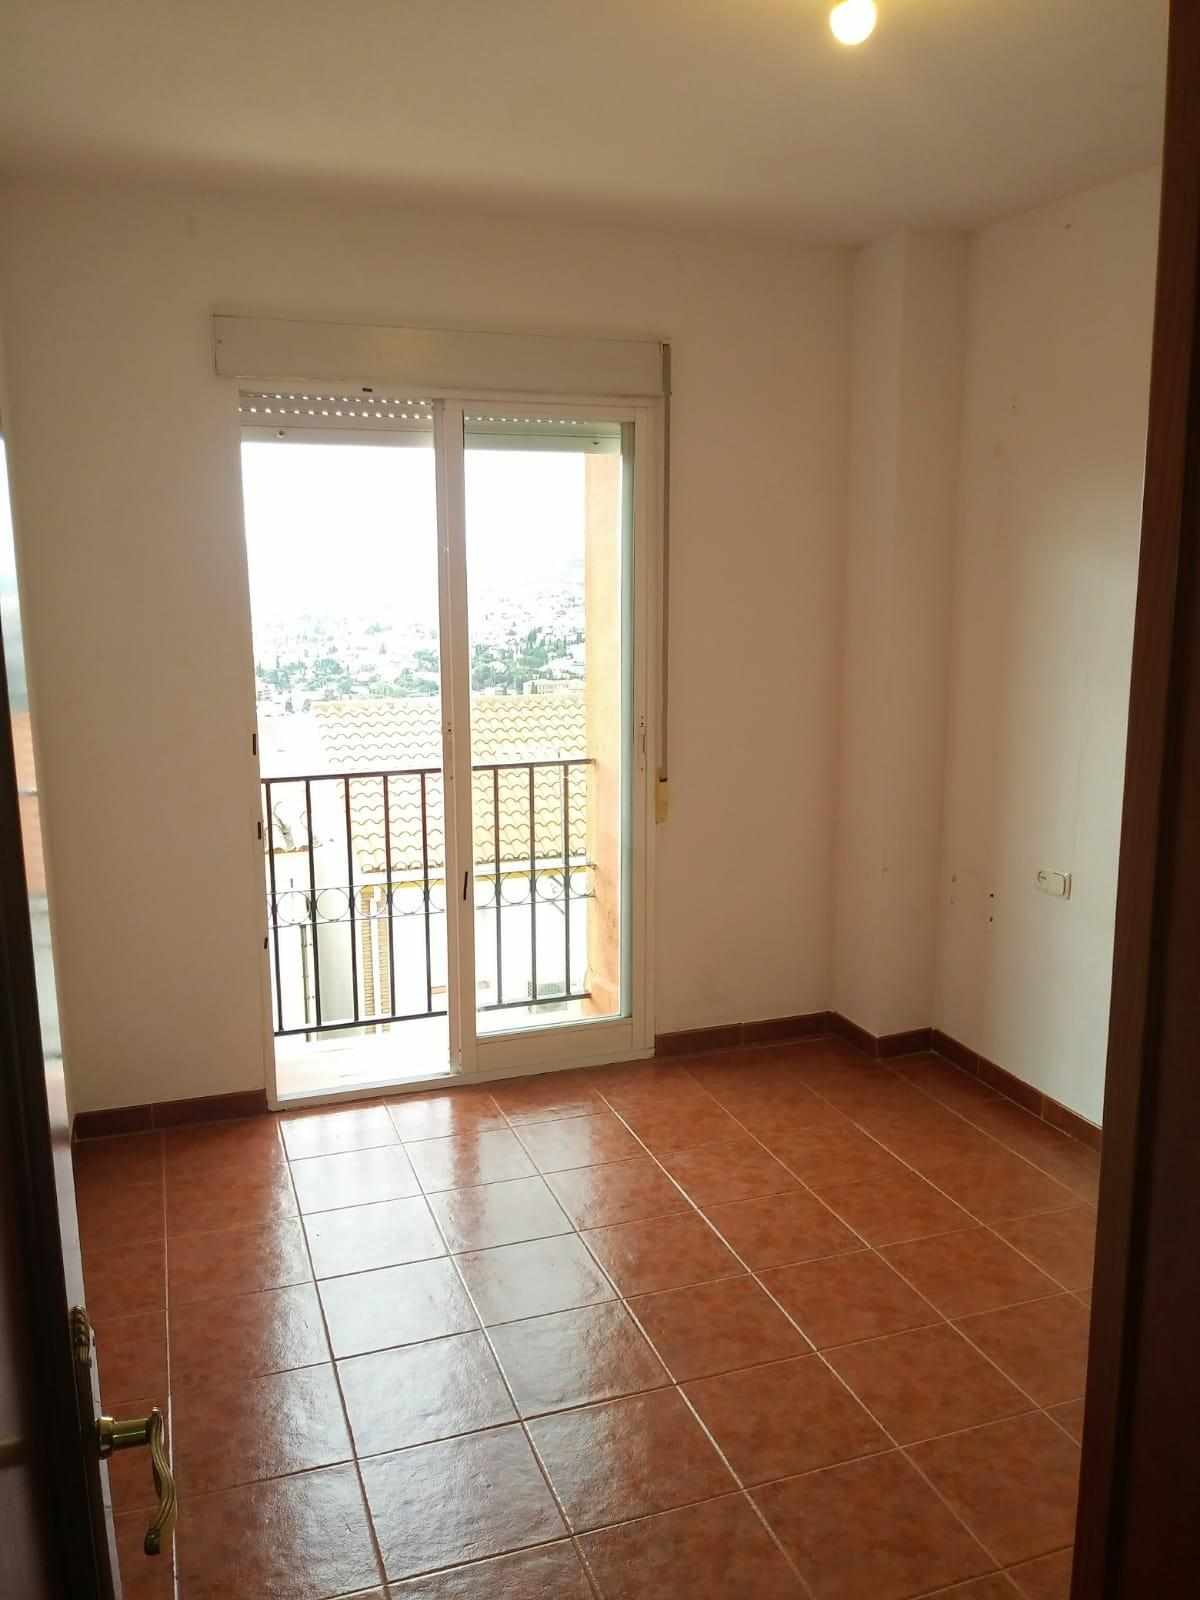 House rent to buy in Monachil, 700 €/month